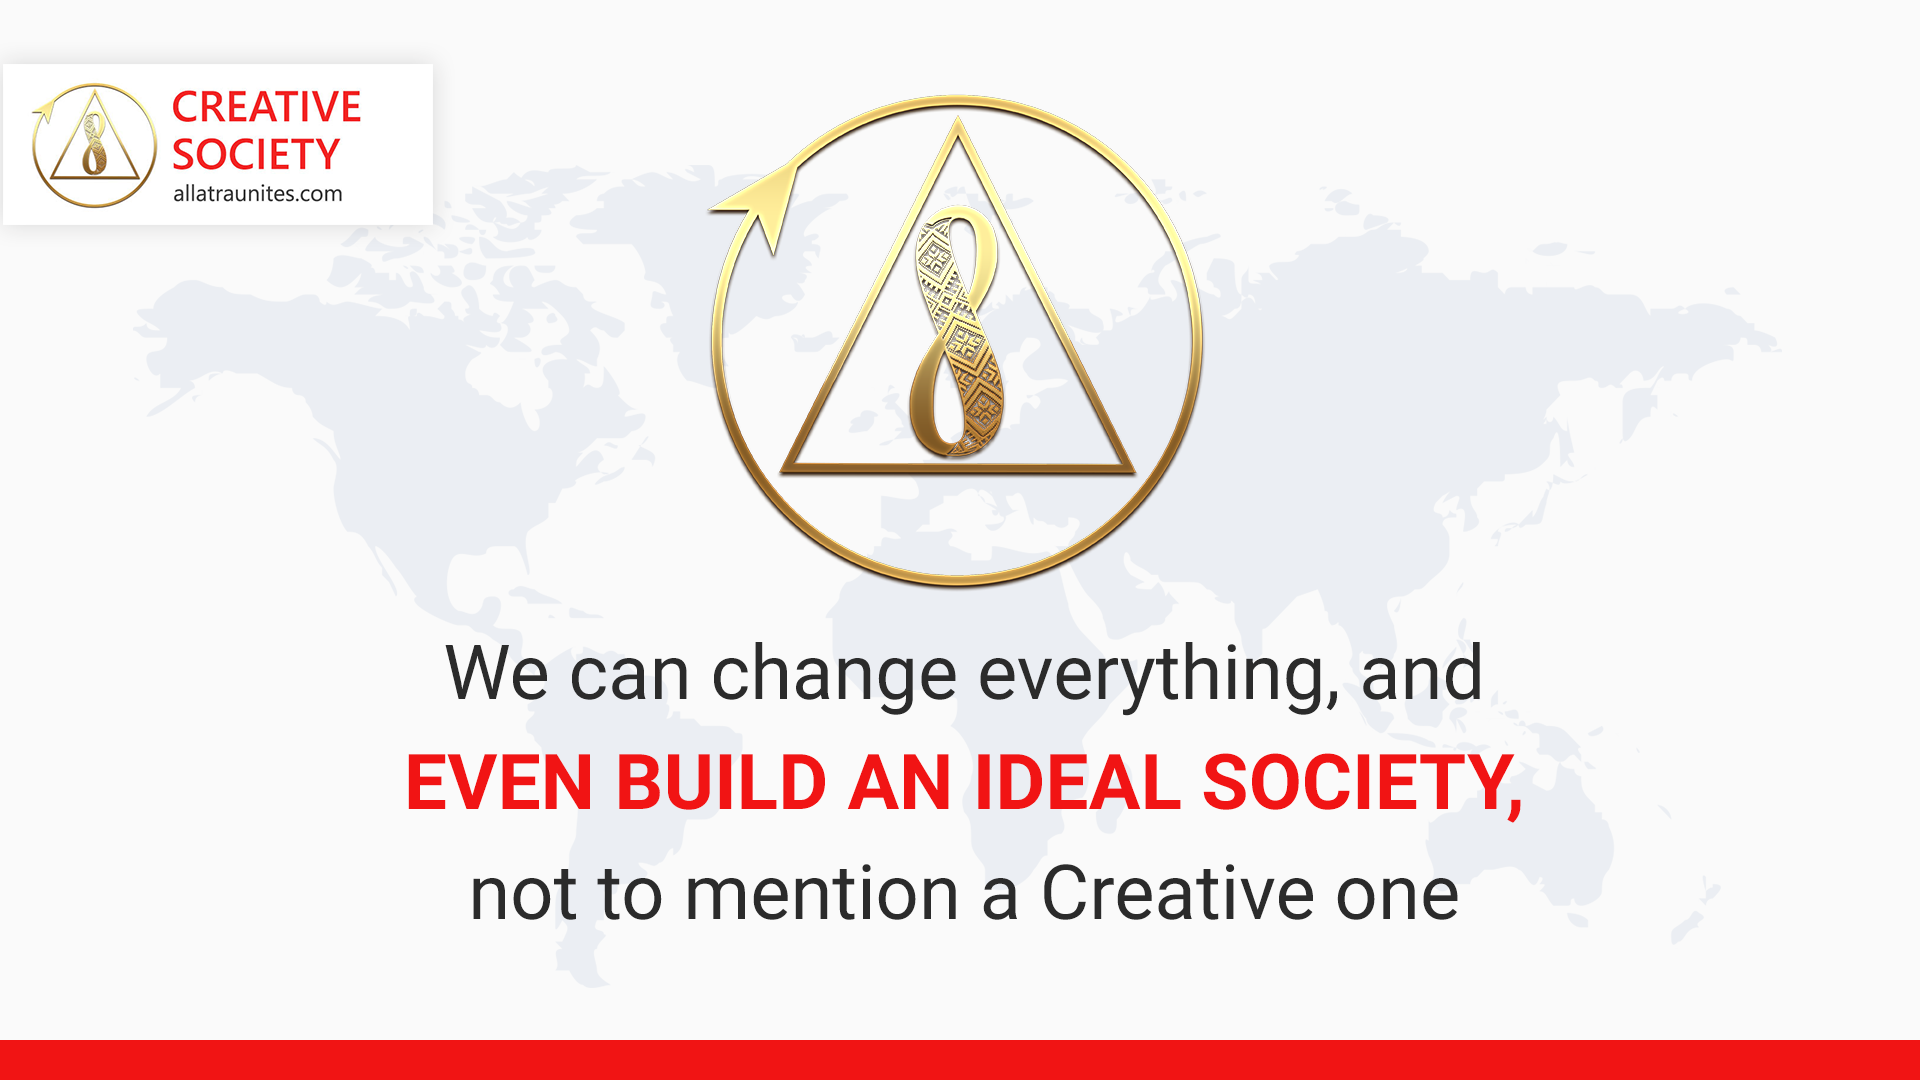 We can change everything